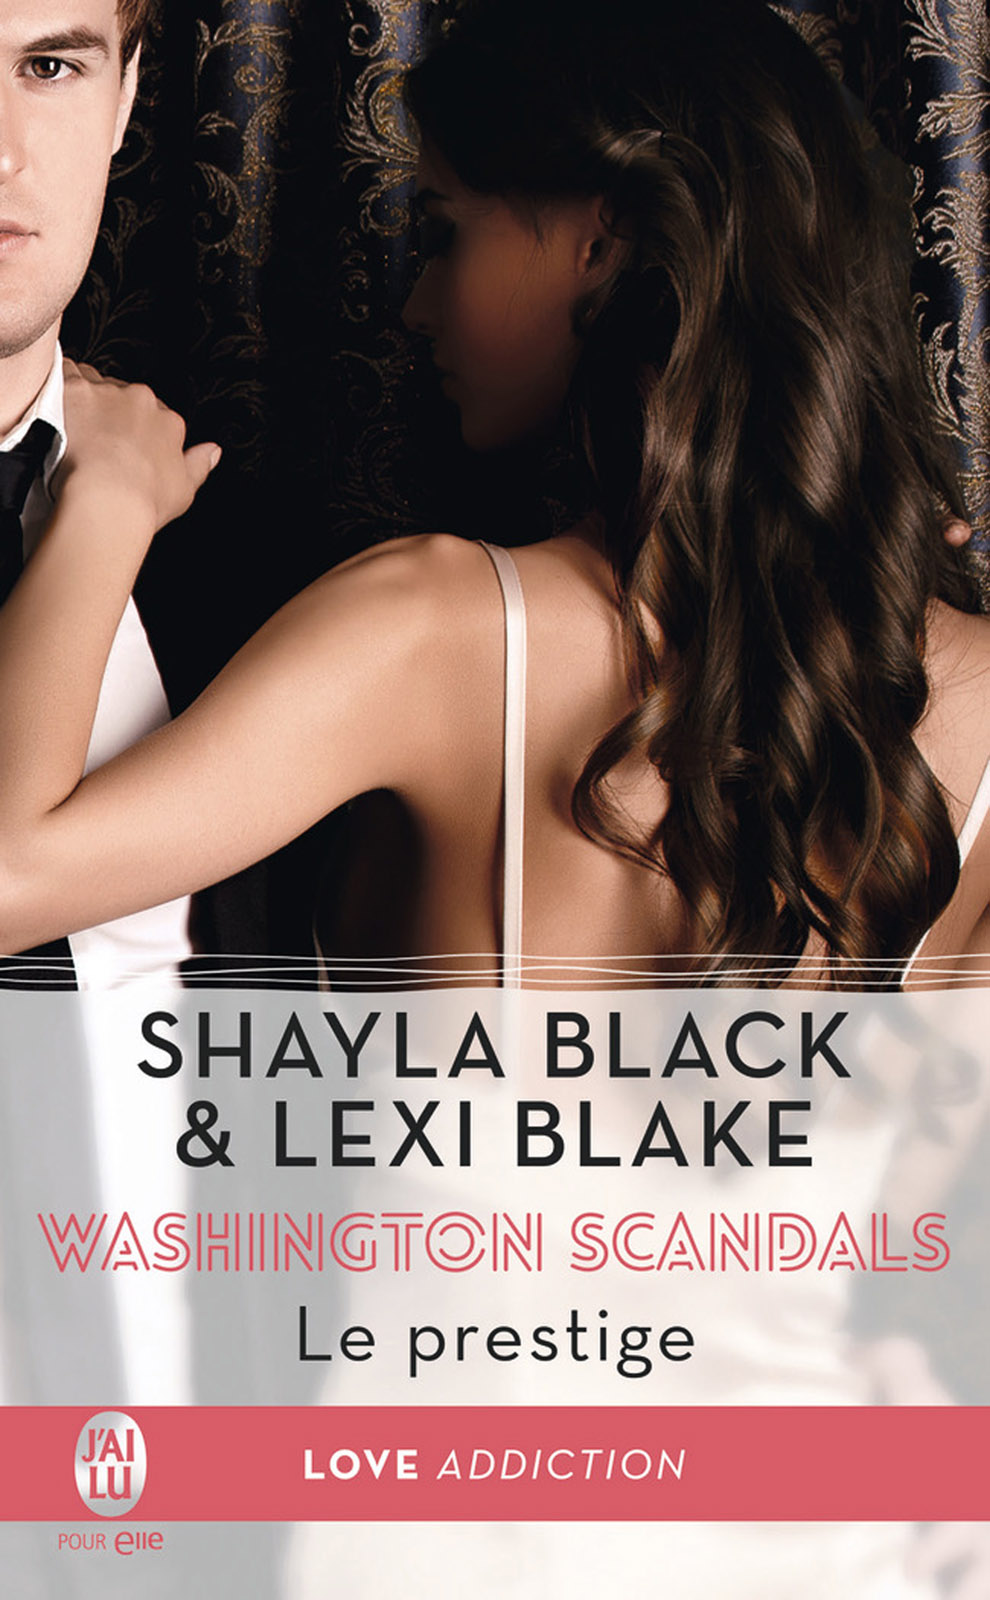 Washington Scandals (Tome 2) - Le prestige